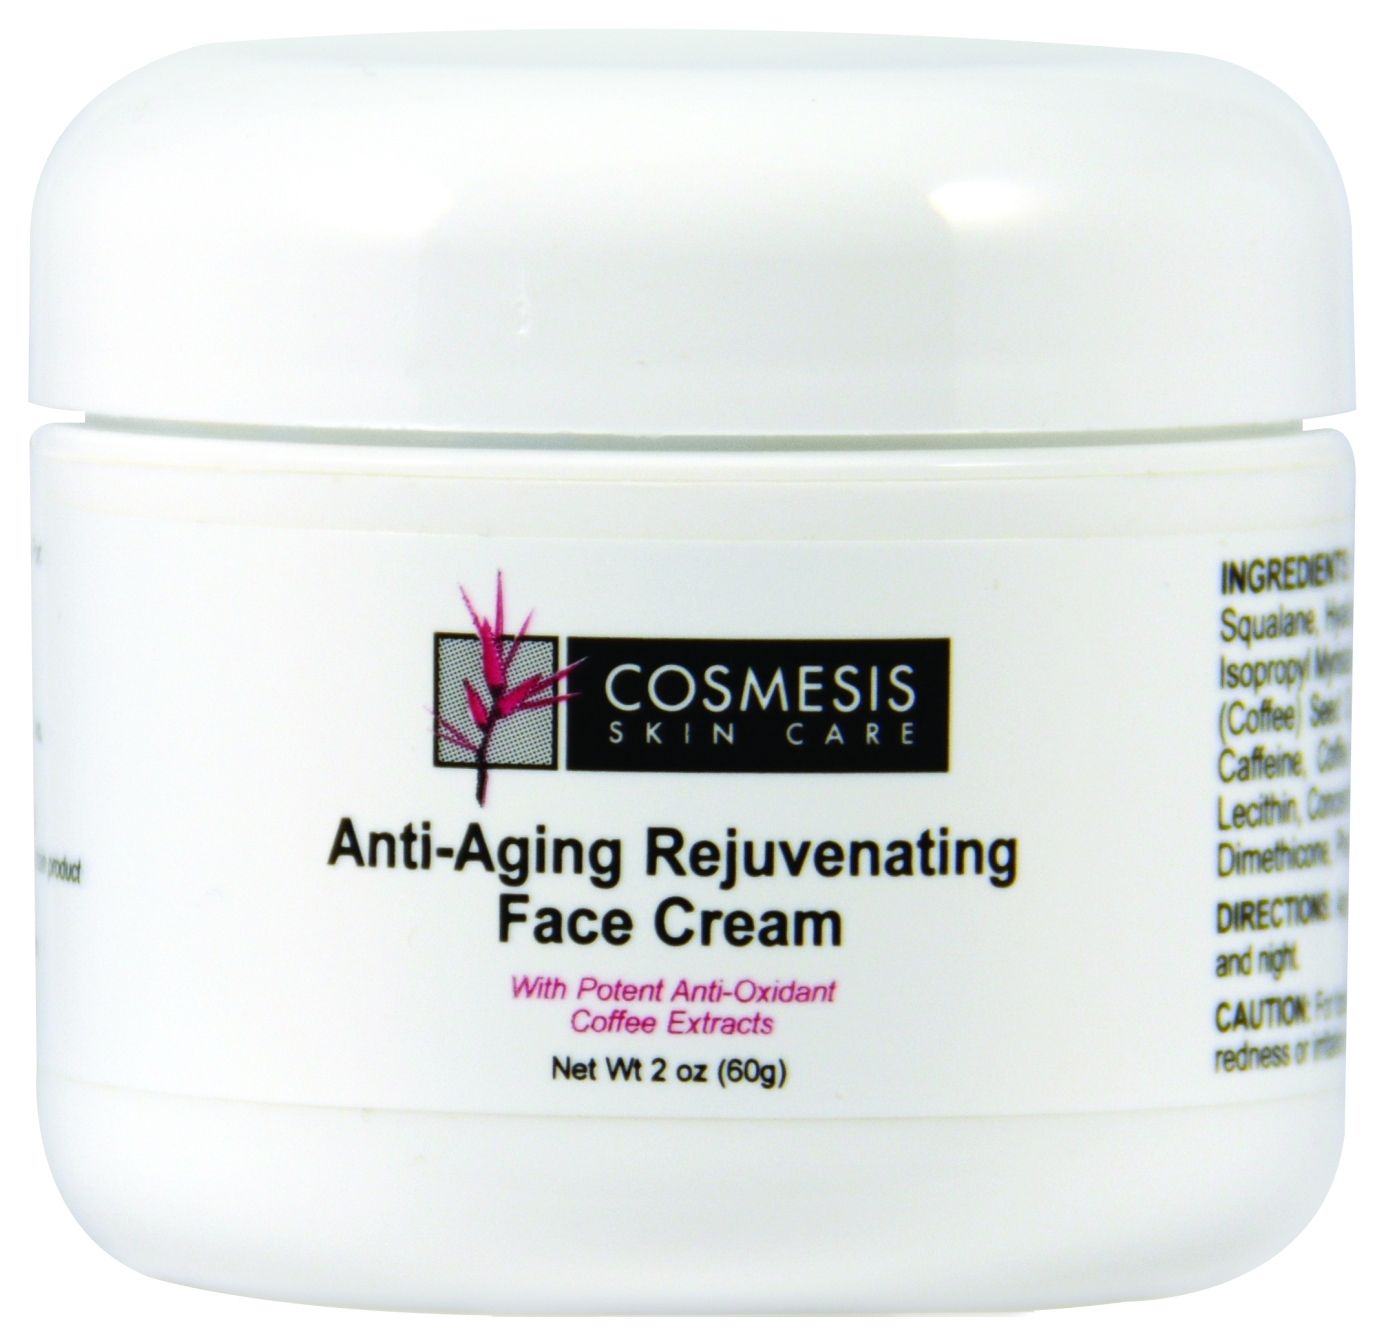 Anti-Aging Rejuvenating Face Cream 2 oz by Life Extension